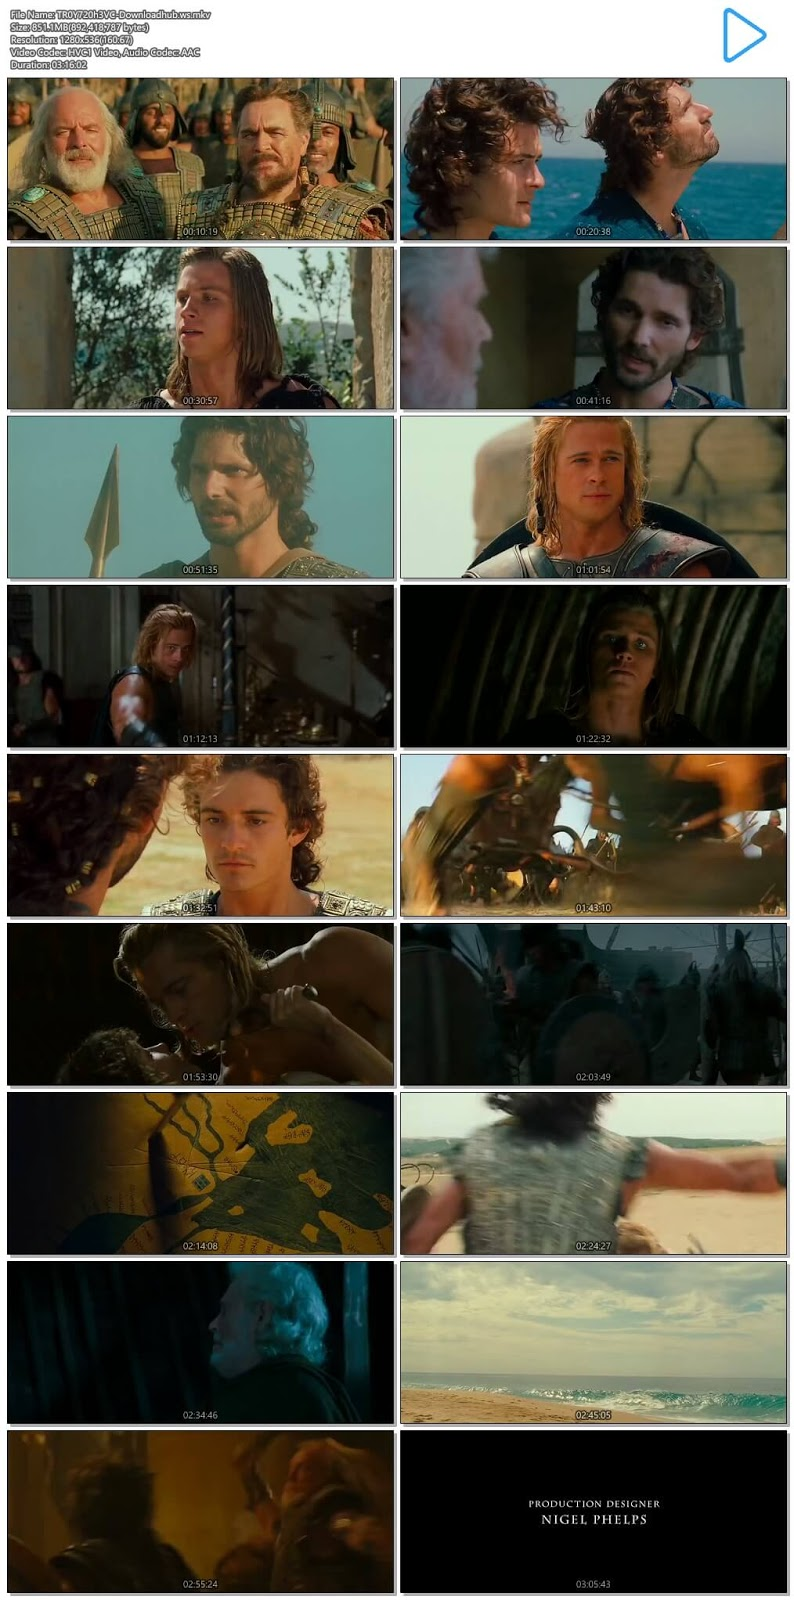 Troy 2004 [Dual Audio] Full Movie Online 720p HD & Download